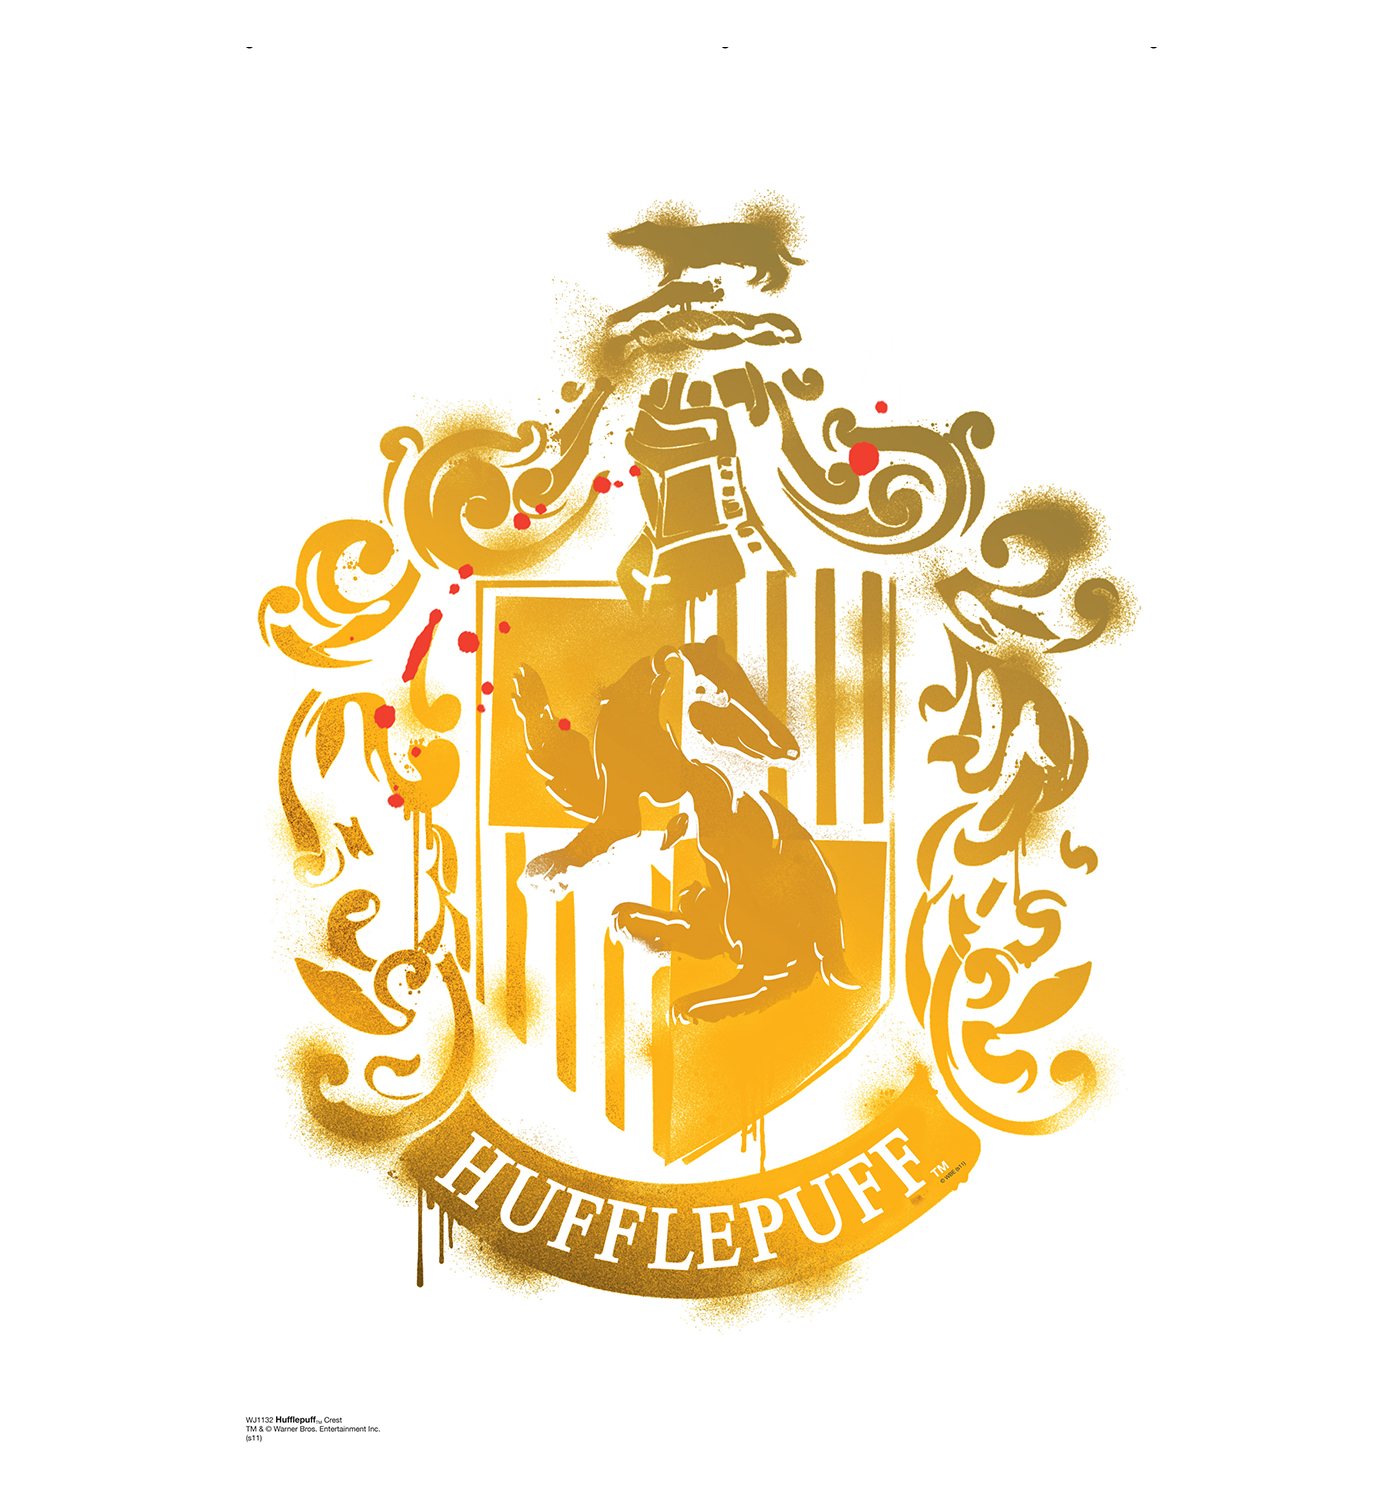 What Hogwarts House Are You